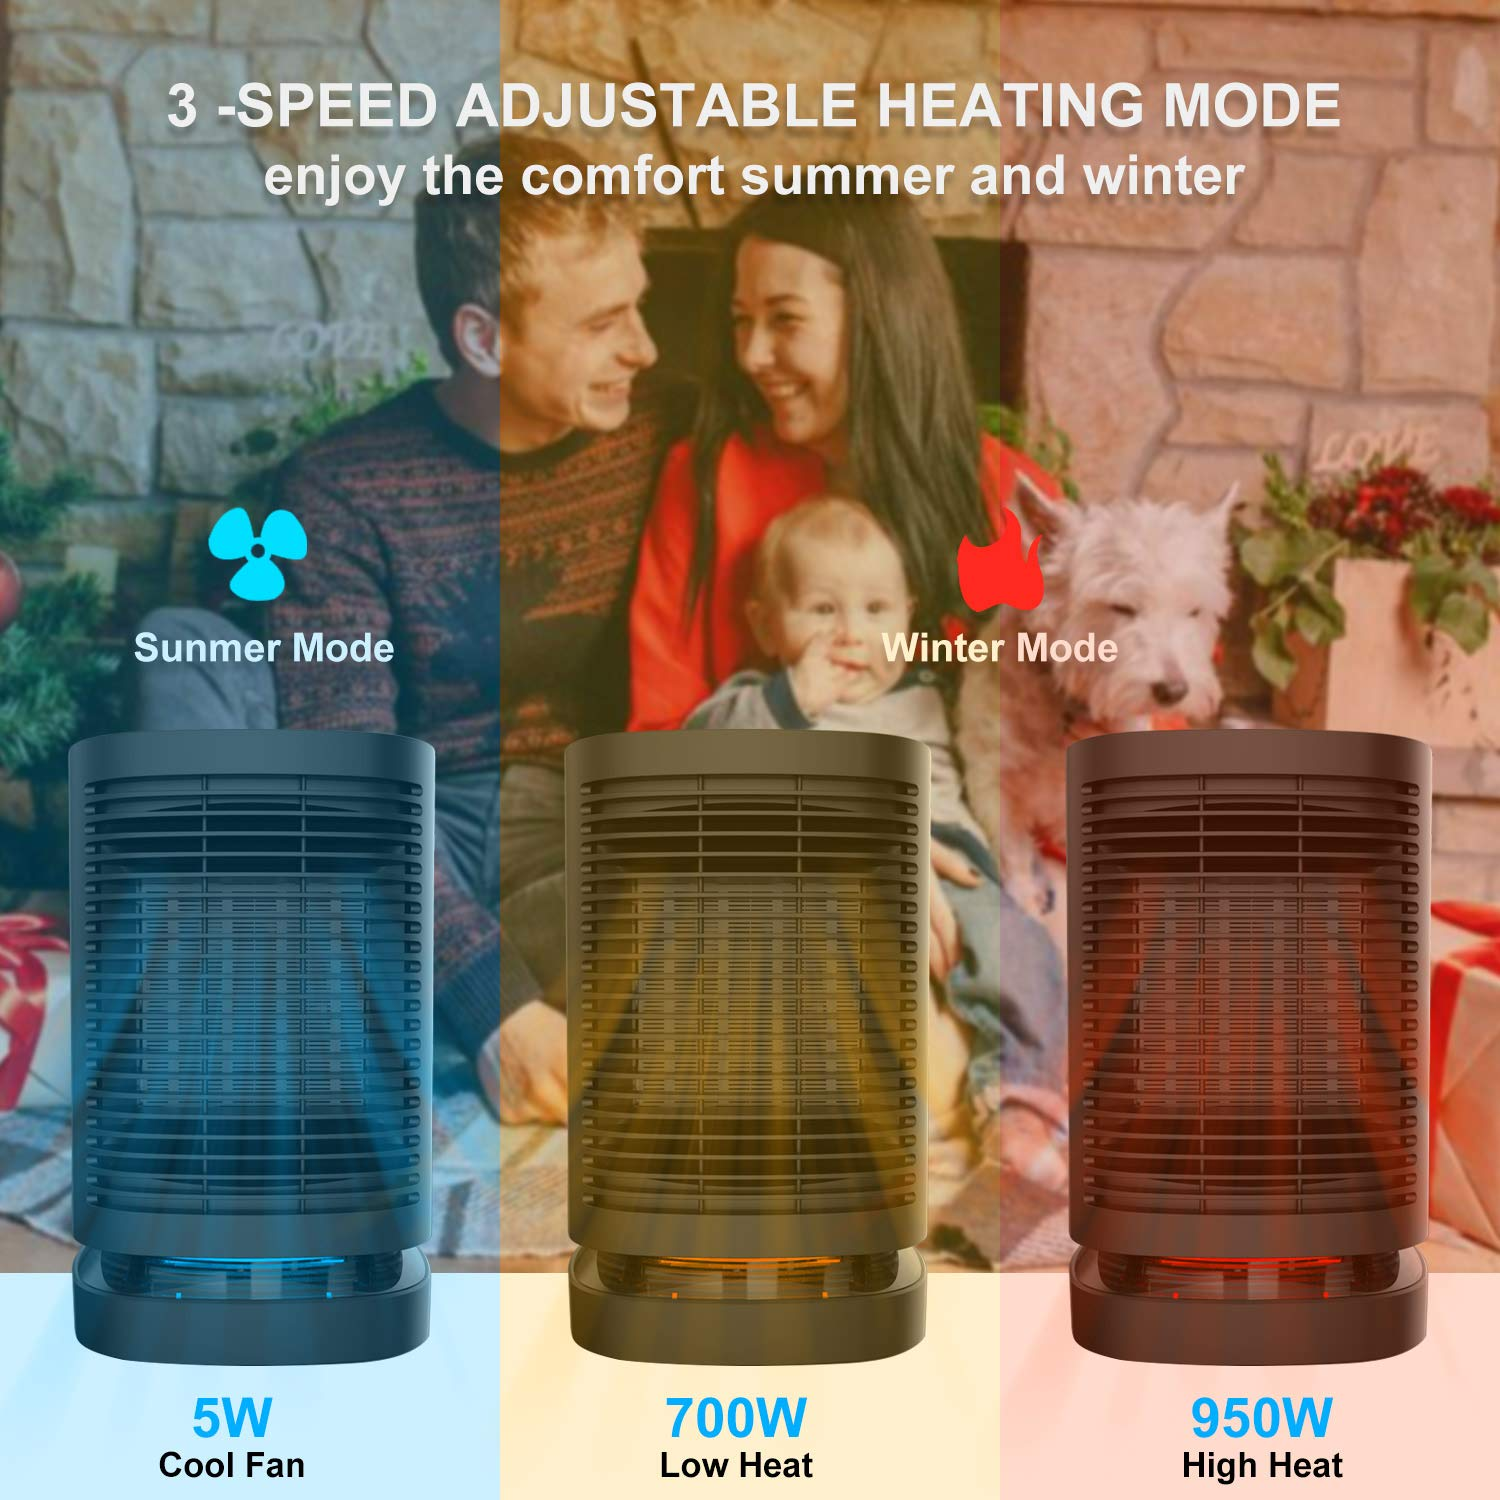 Portable Electric Ceramic Space Heaters, 2 in1 2SPersonal Heater Fan with Auto Oscillating Hot & Cool Mode, Features Built-in Timer and Tip-Over & Over-Heat Protection 950W with Worldwide Adapters